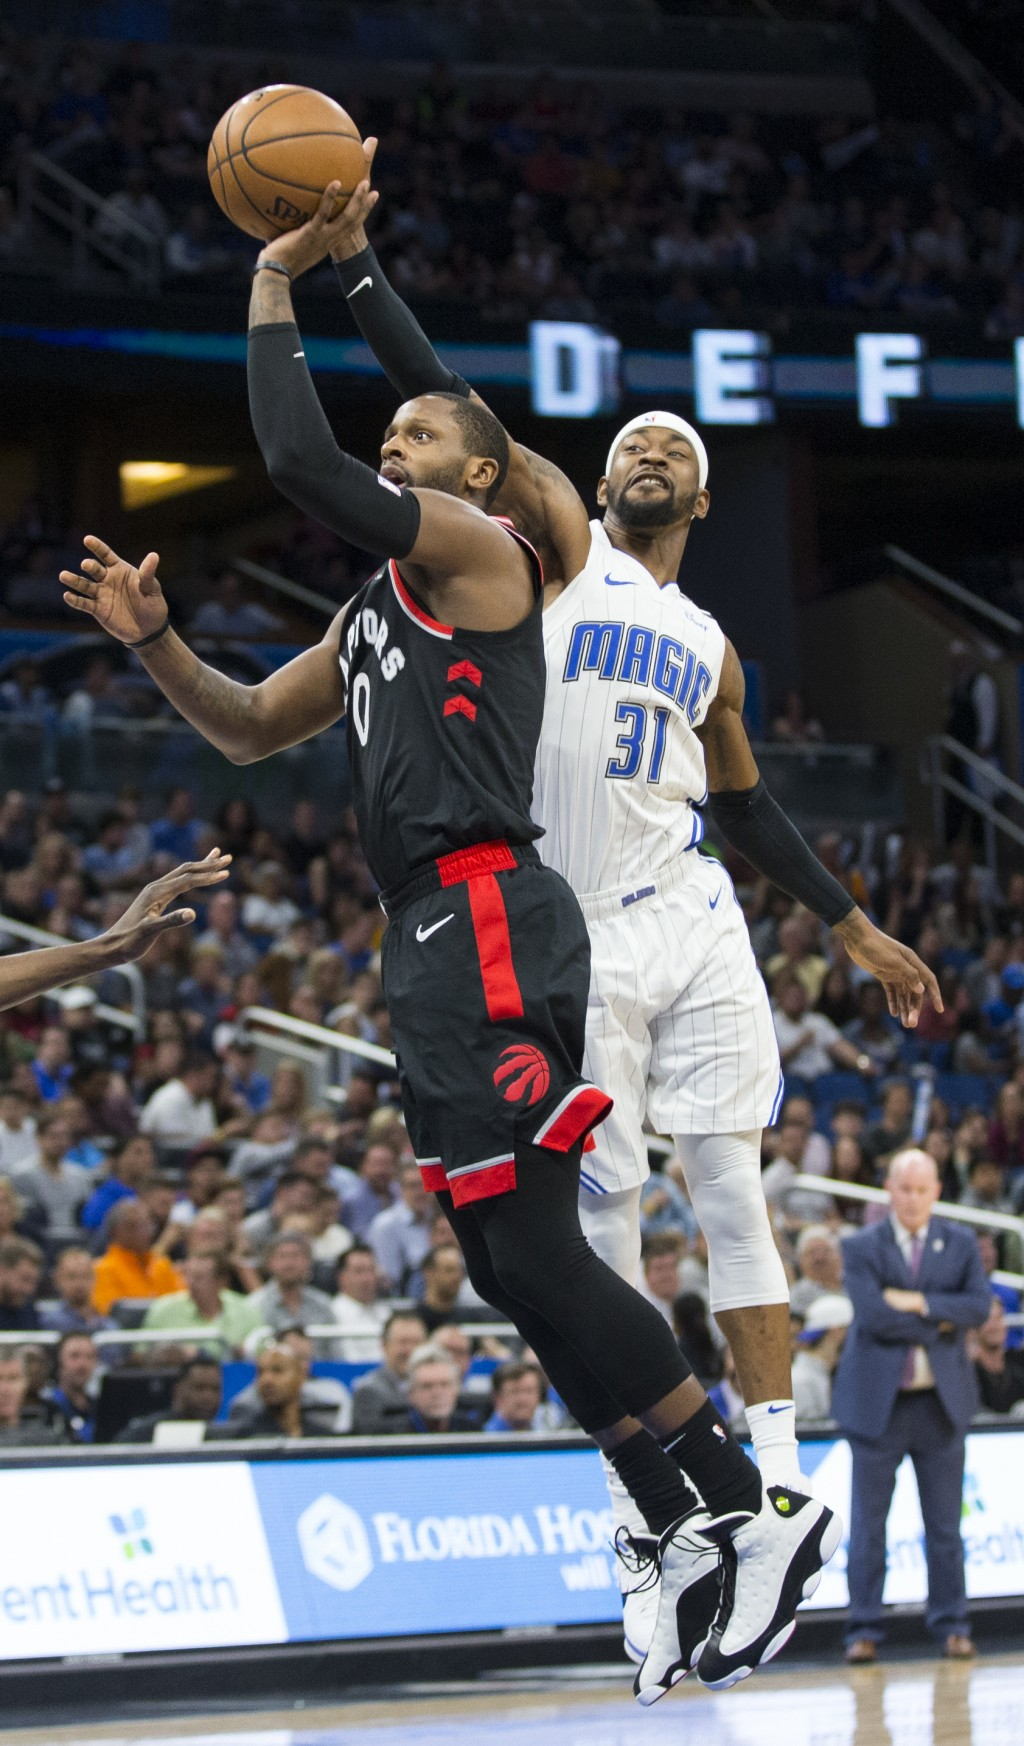 Toronto Raptors forward CJ Miles (0) shoots while Orlando Magic guard Terrence Ross (31) tries to block the shot during the first half of an NBA baske...